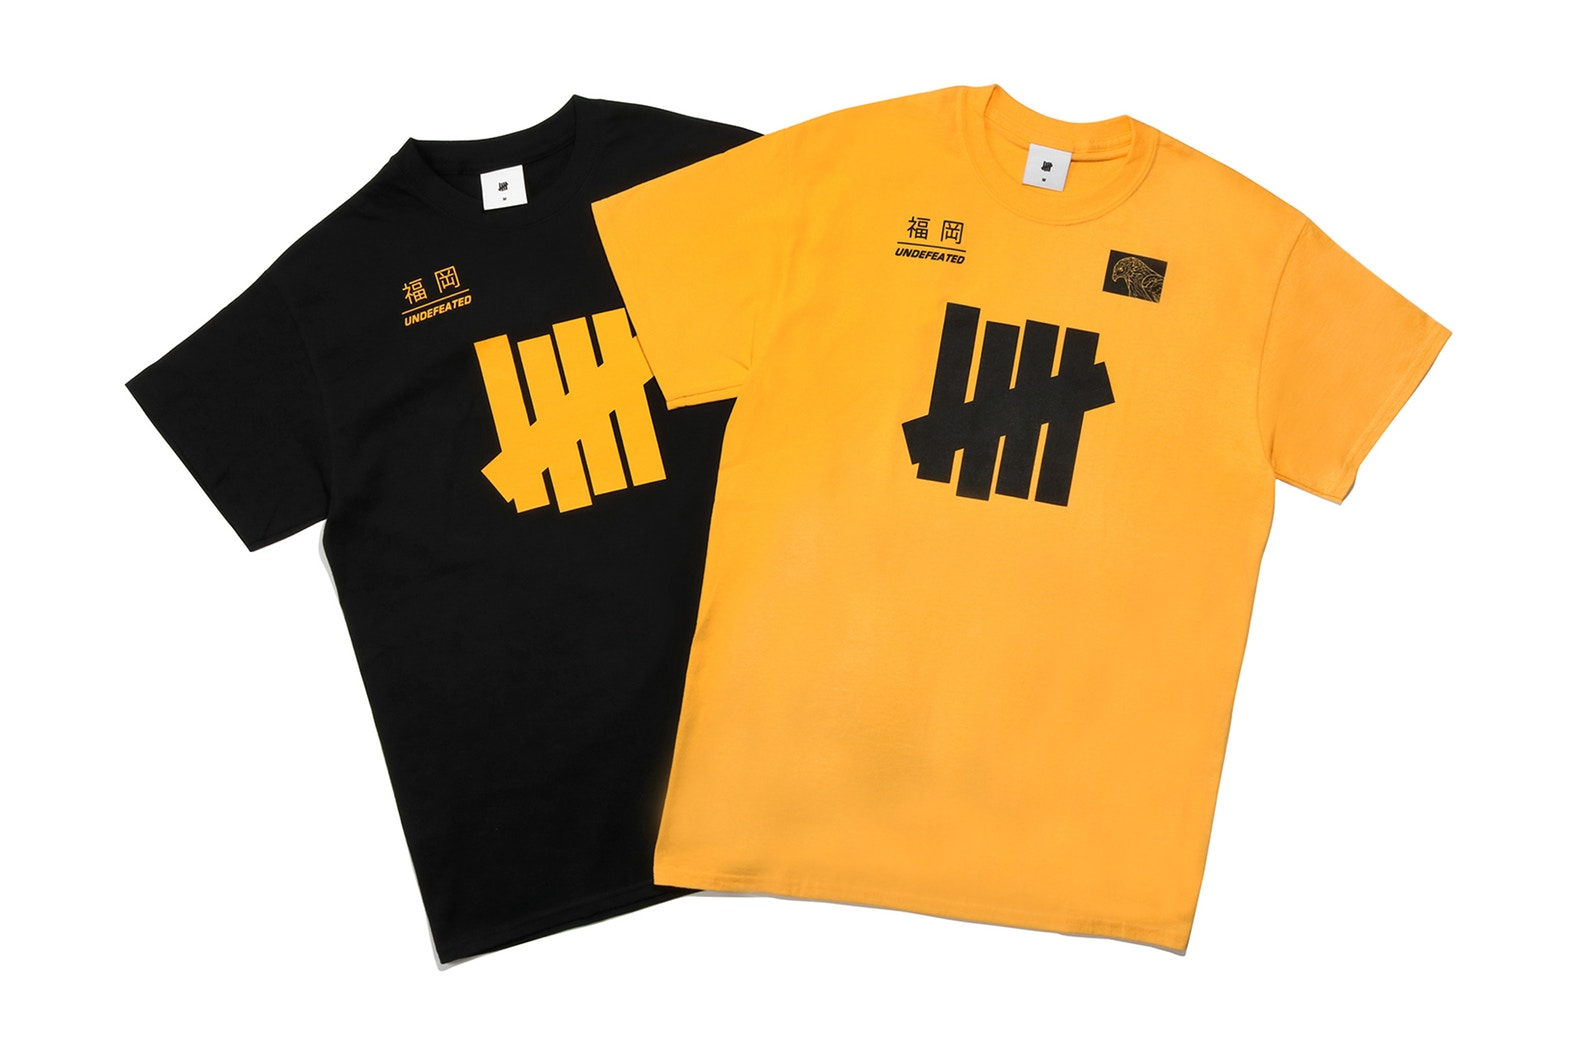 27b20188af84 UNDEFEATED Launches Fukuoka Store With Exclusive T-Shirt Capsule